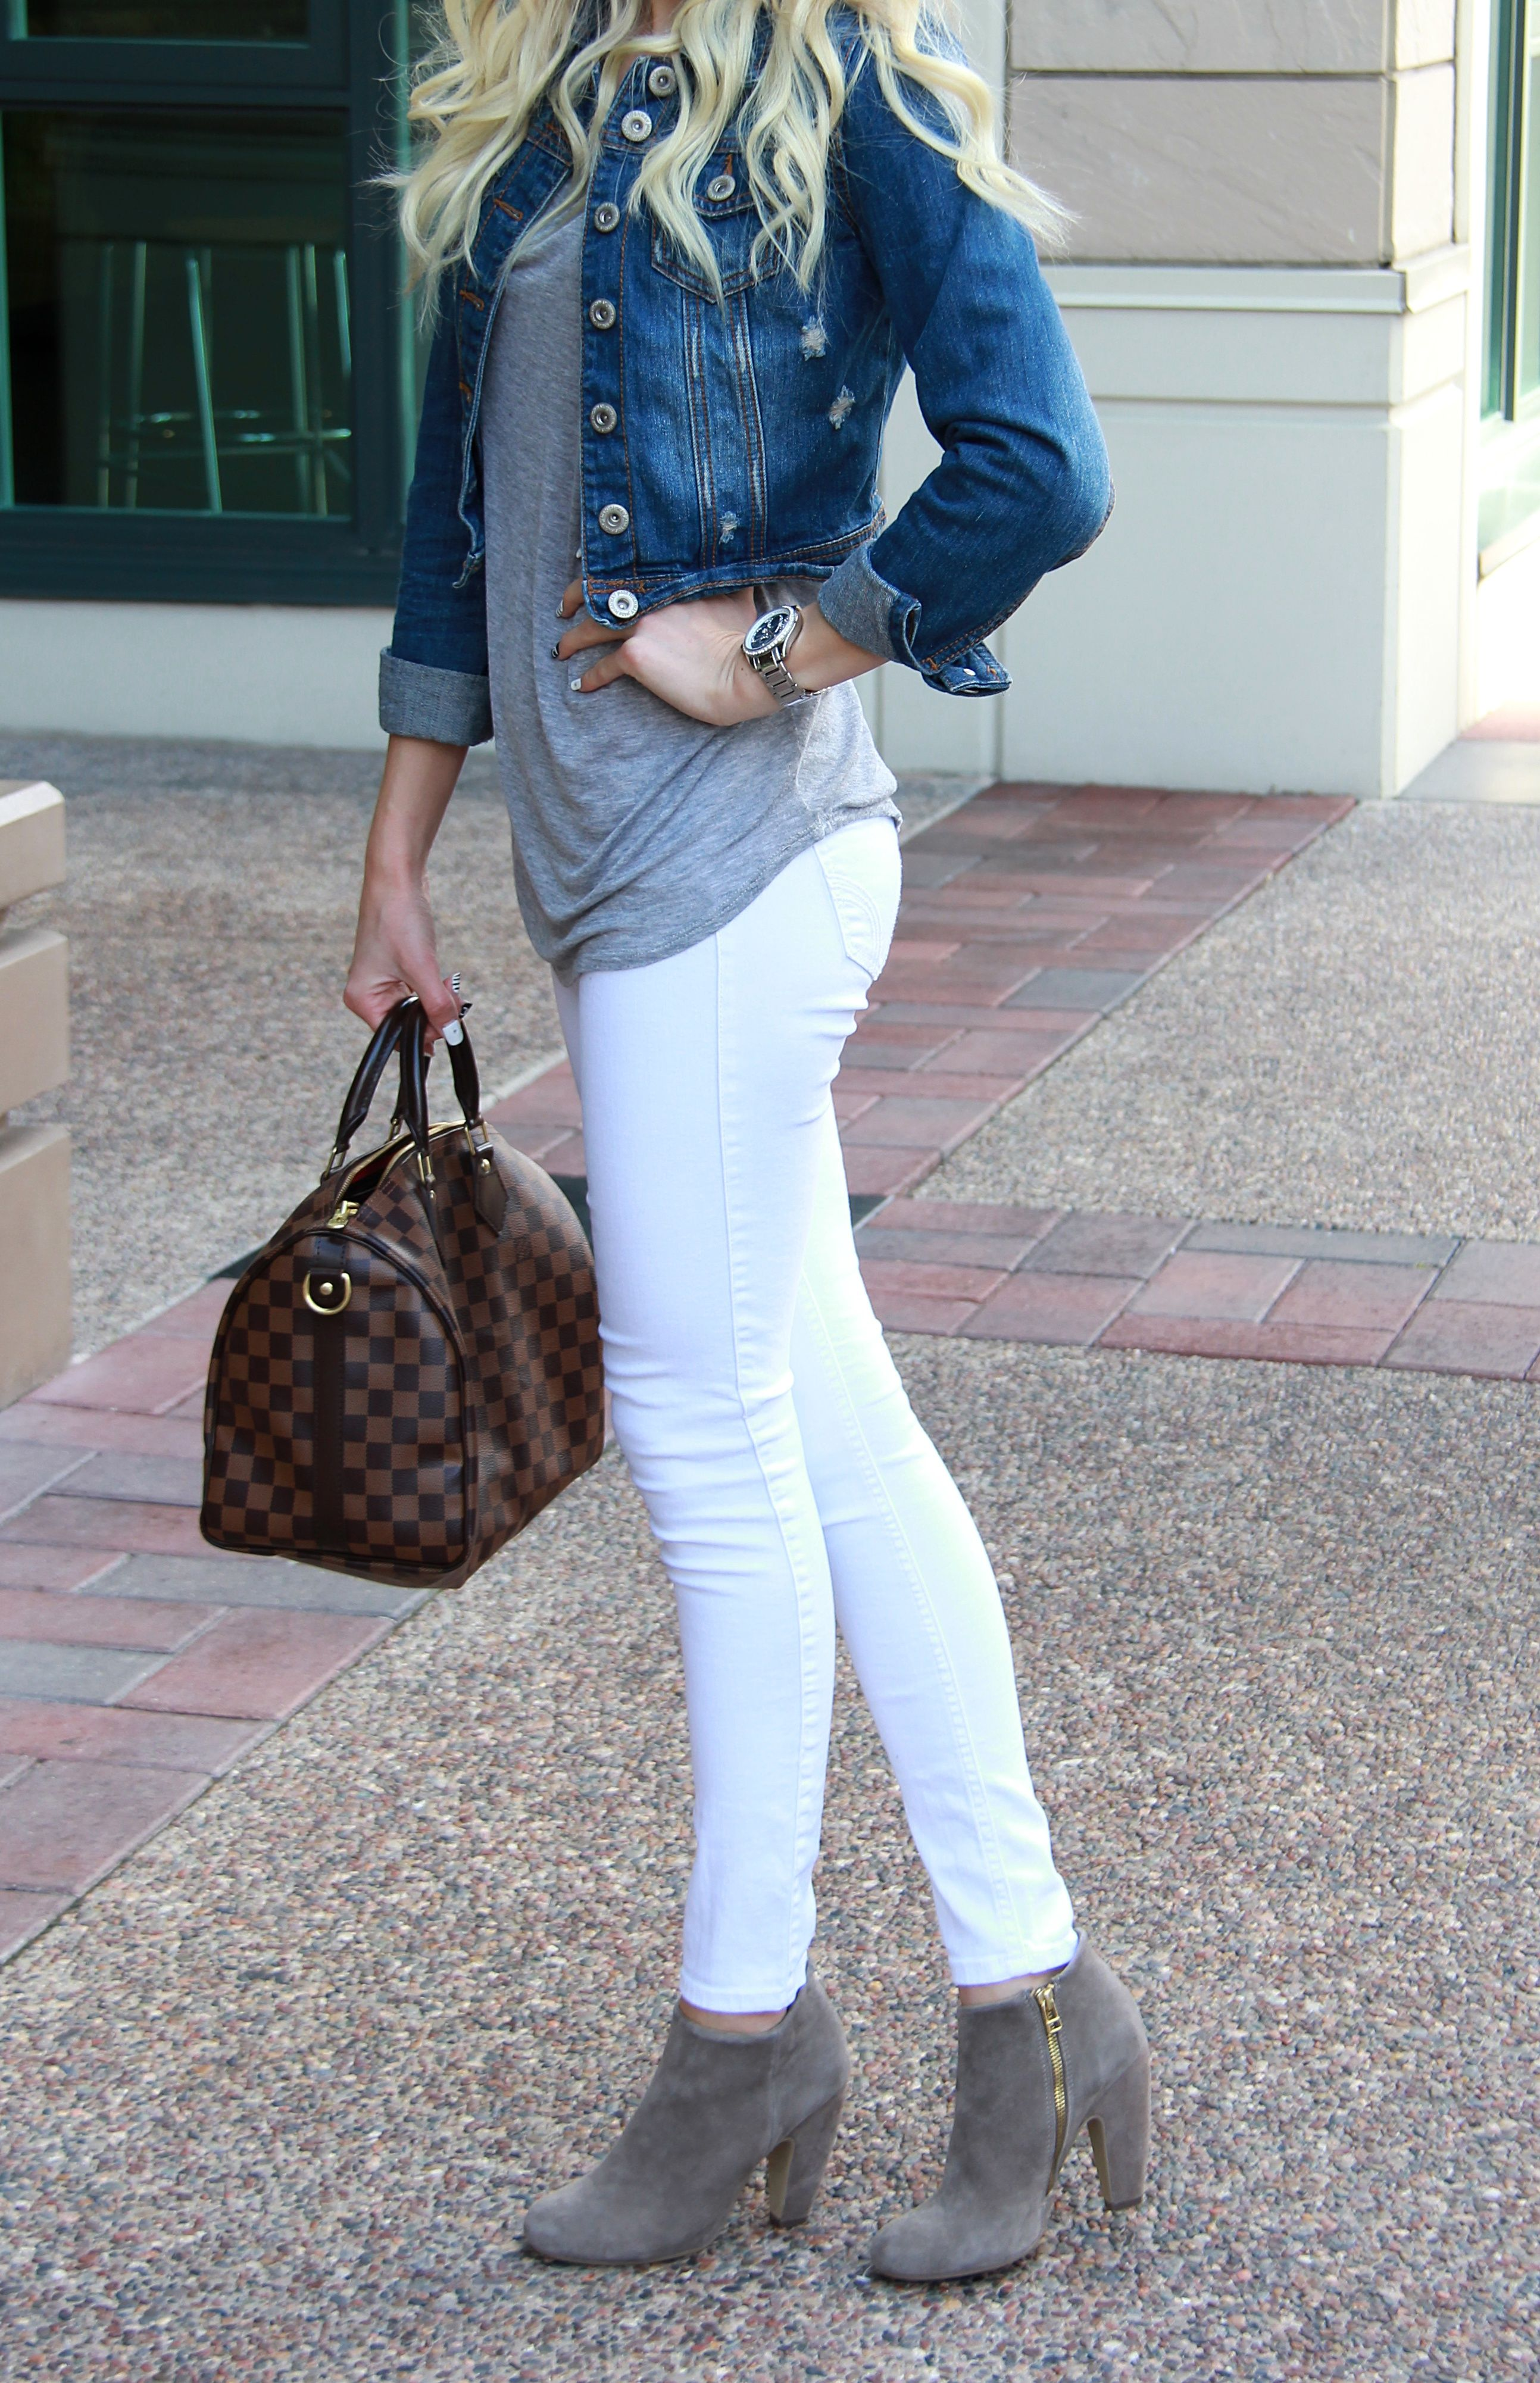 6645826fa8020a those grey booties though; Jean Jacket + White Jeans + Grey Booties ...